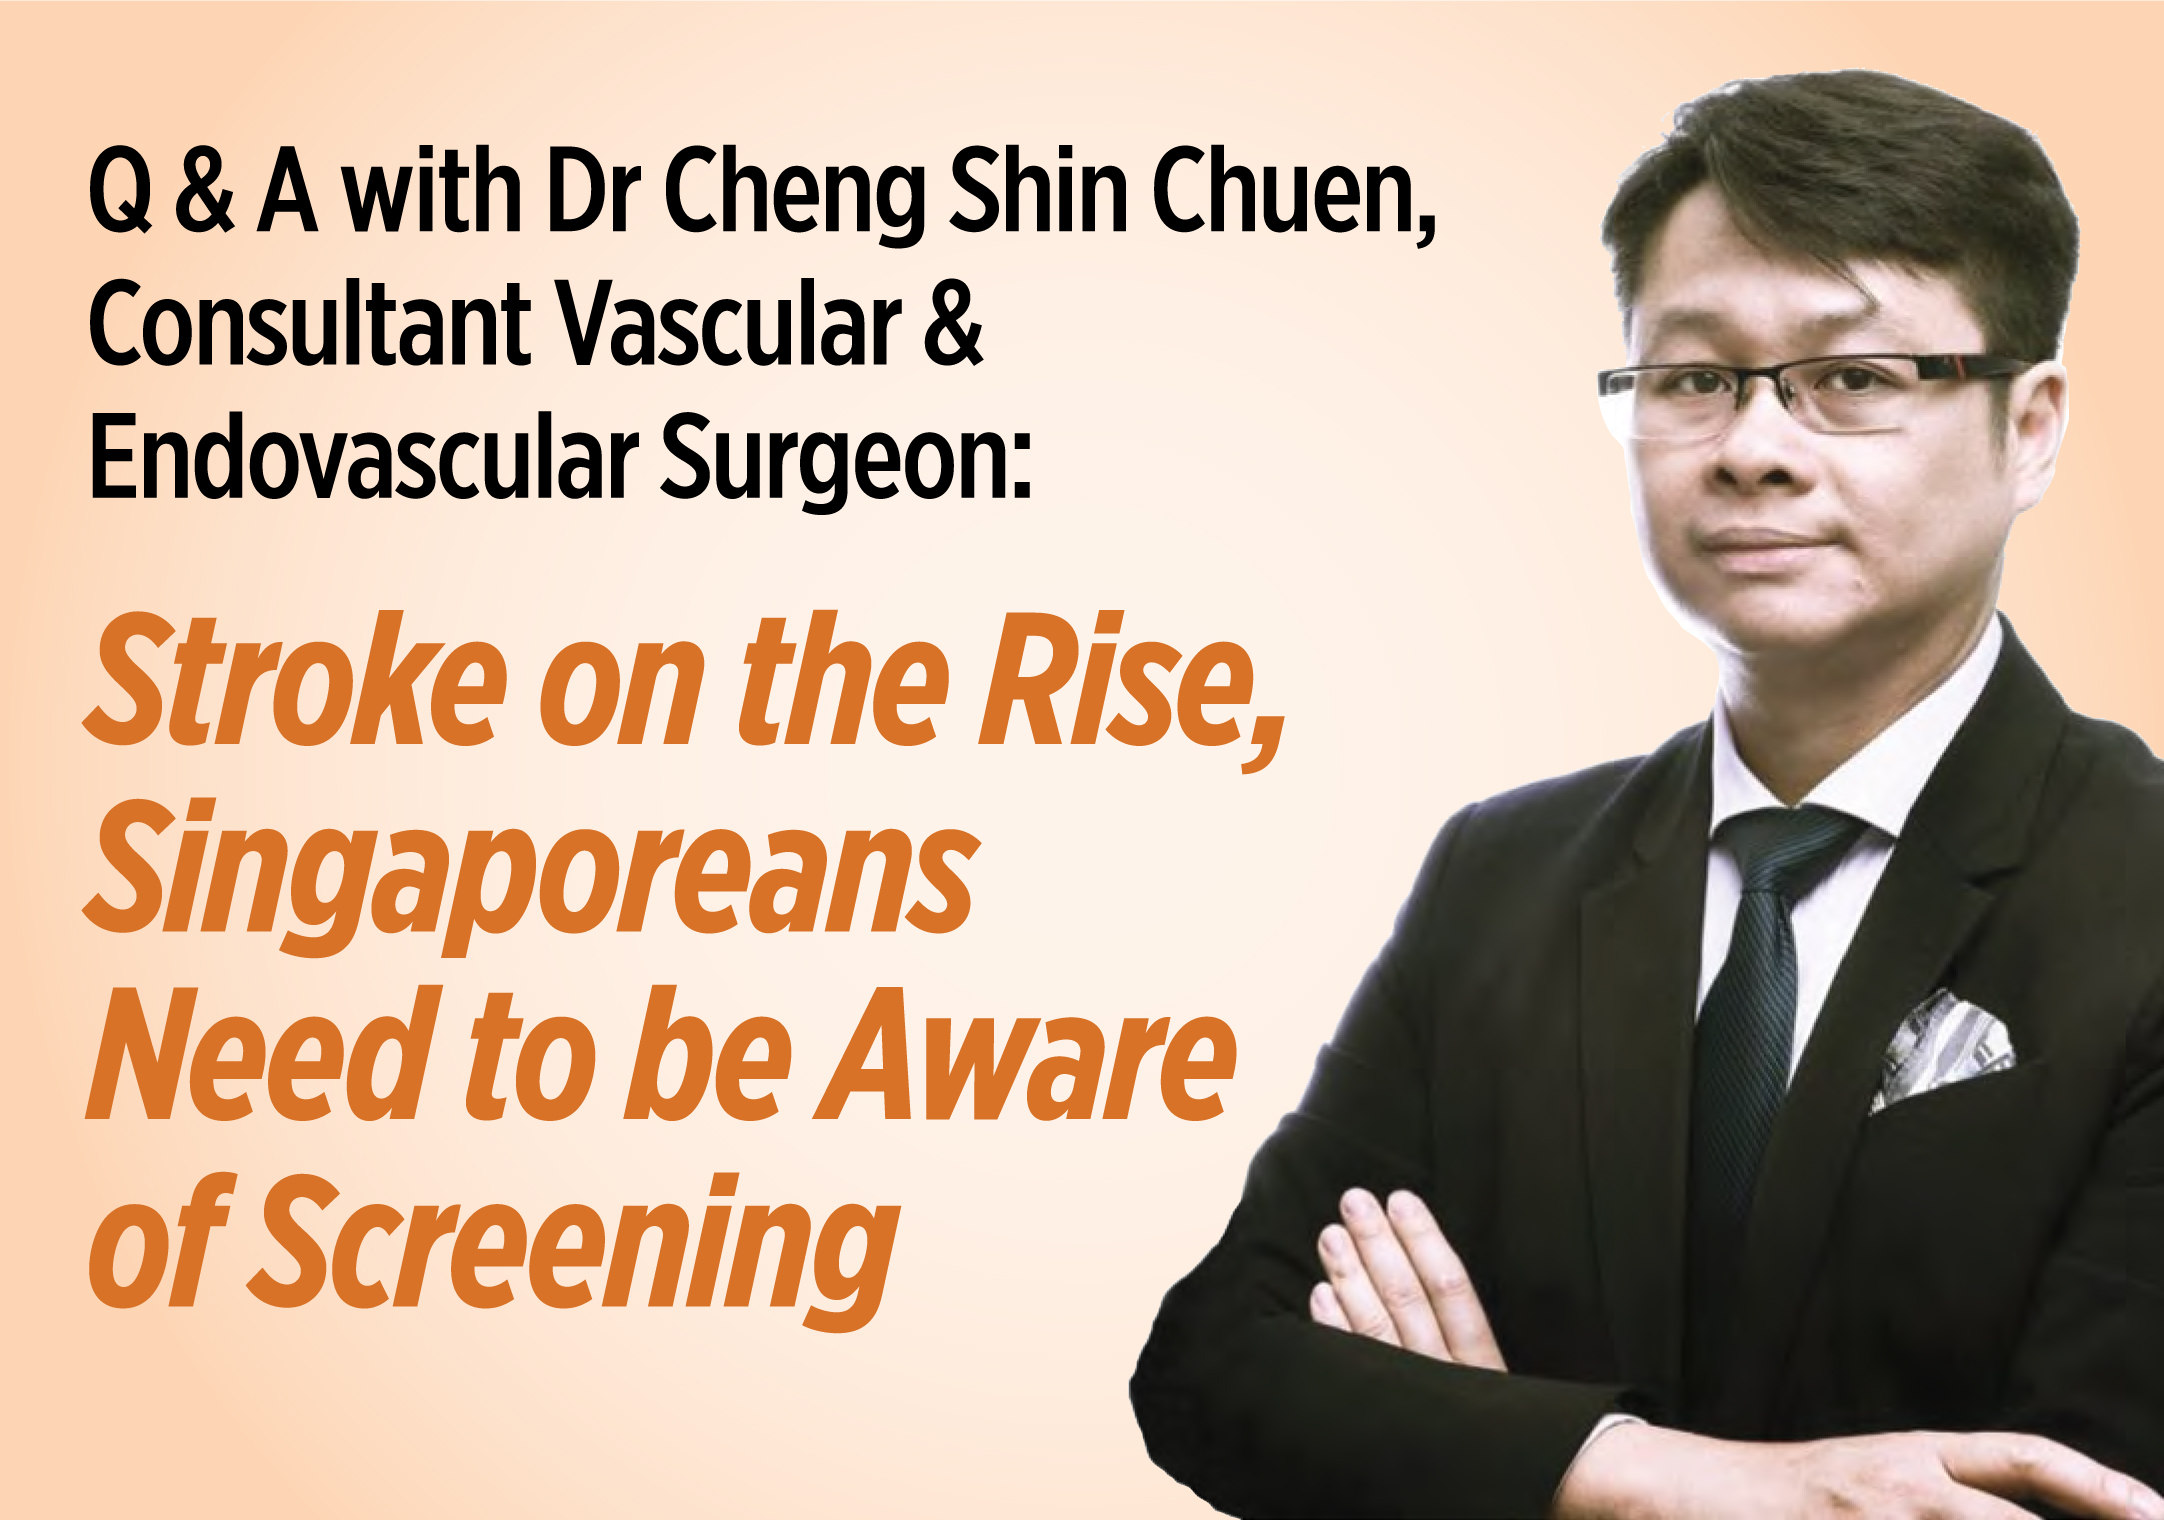 Q & A with Dr Cheng Shin Chuen, Consultant Vascular & Endovascular Surgeon